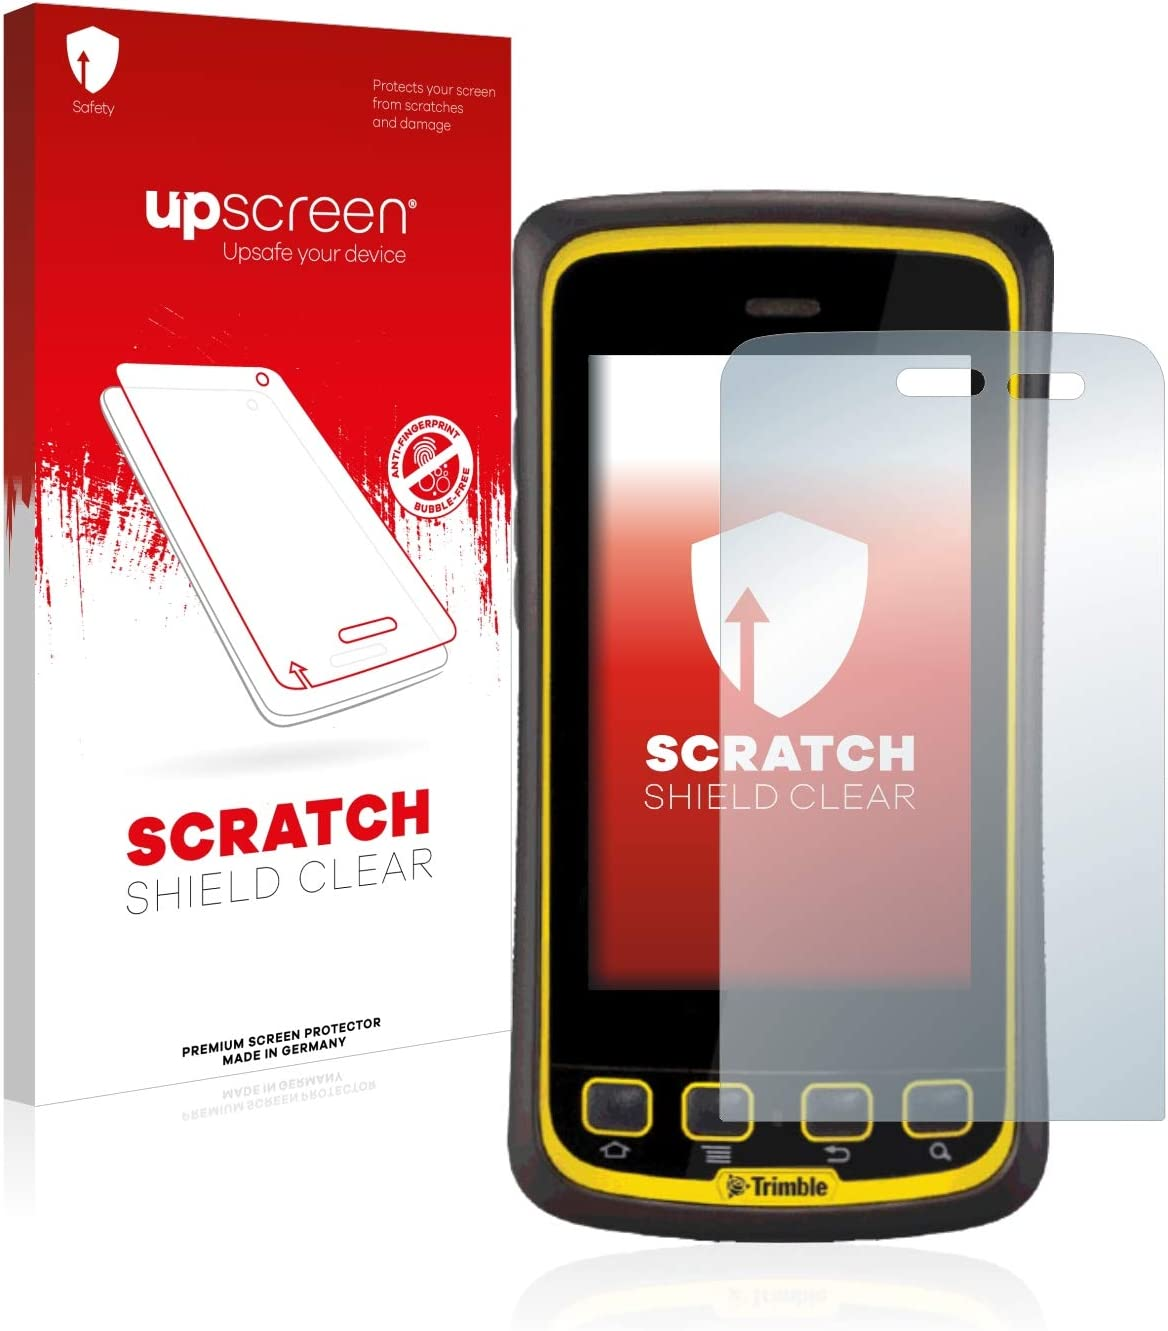 Multitouch Optimized Scratch Shield Clear Screen Protector for Juno T41 C upscreen High Transparency Strong Scratch Protection